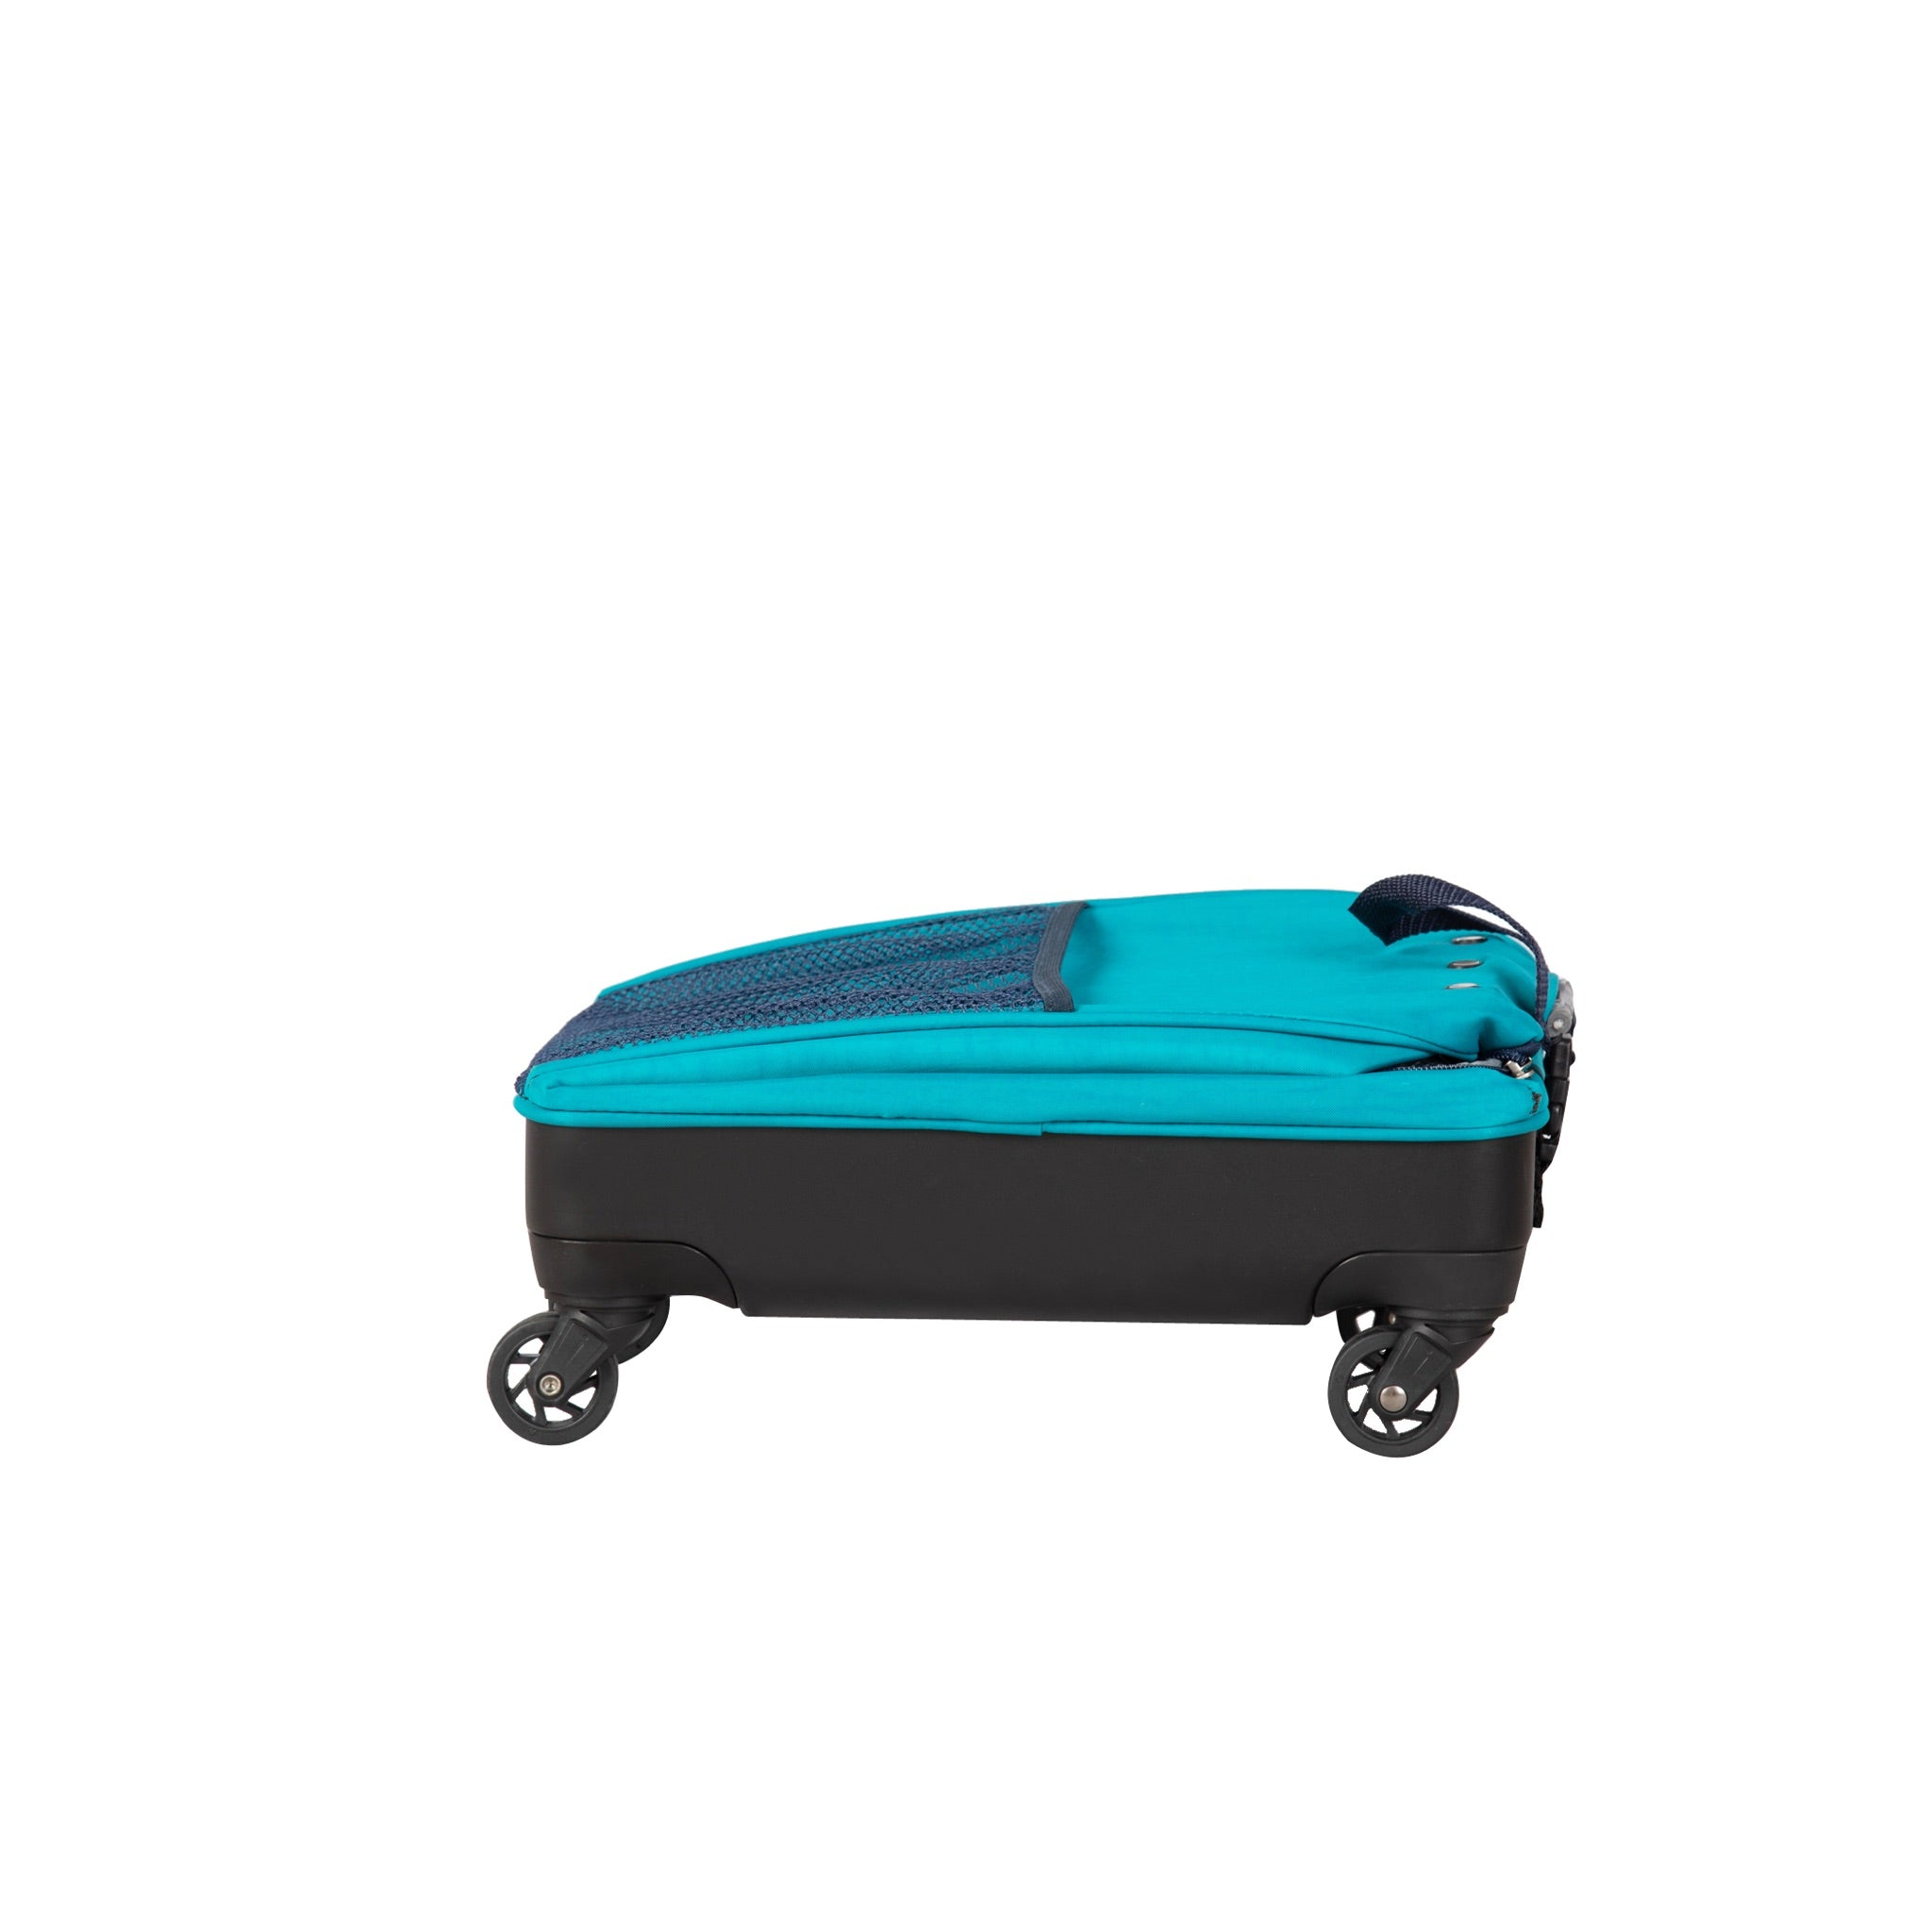 Handy Sandy Travel Wagon Deluxe - handy | sandy